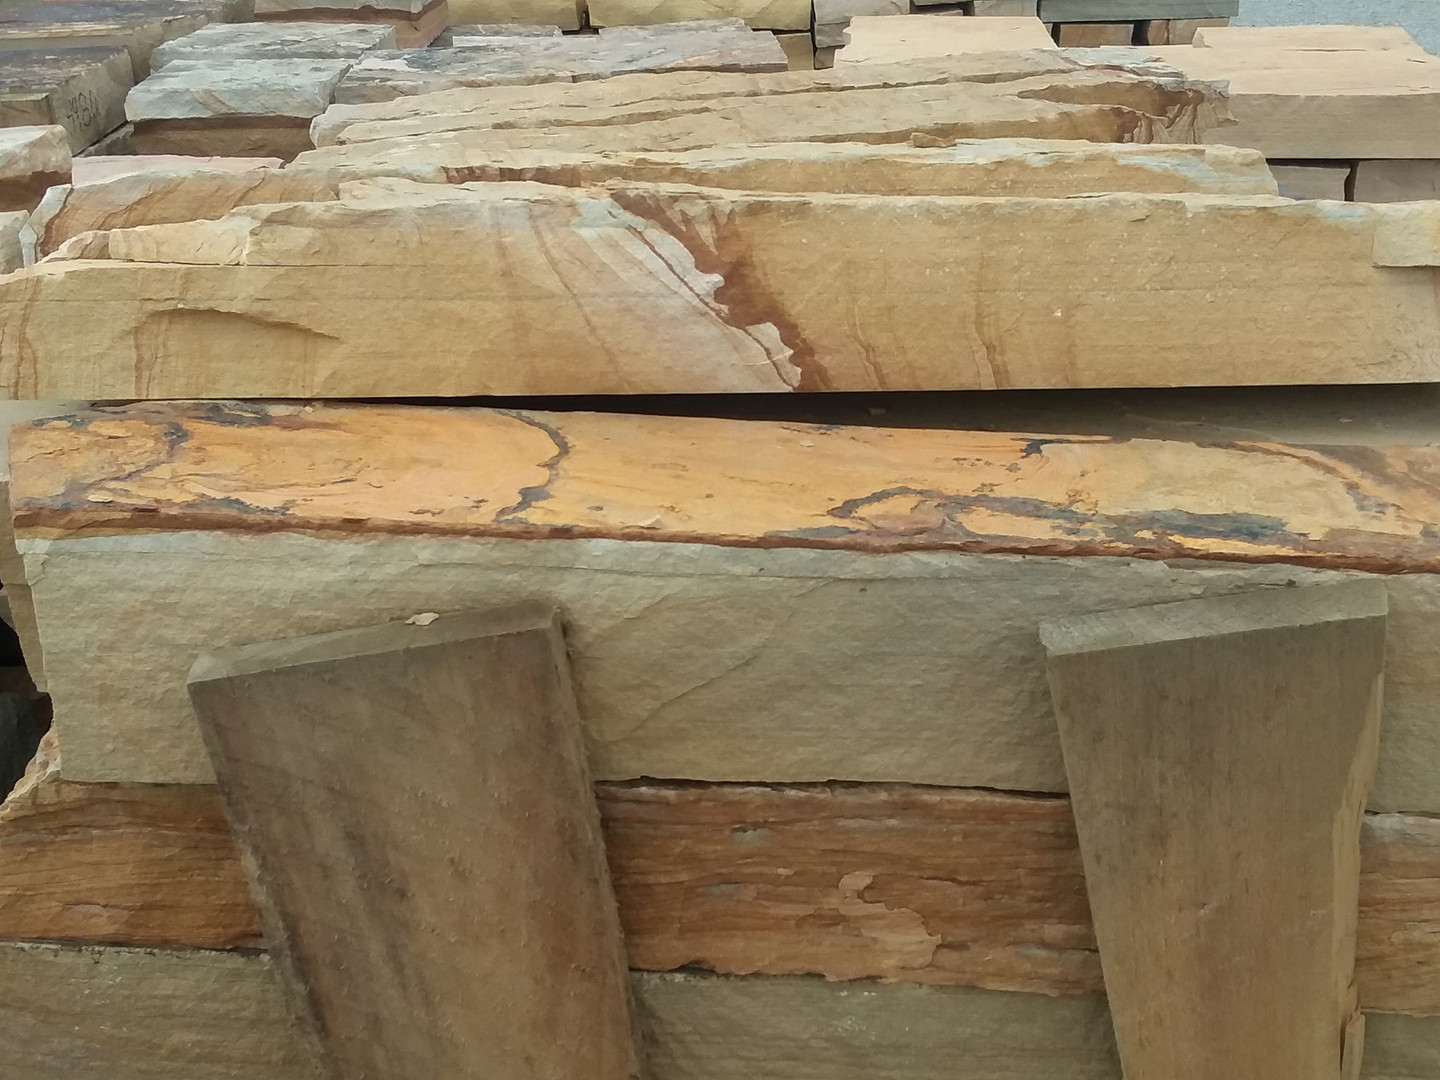 Brown and tan thick strip rubble